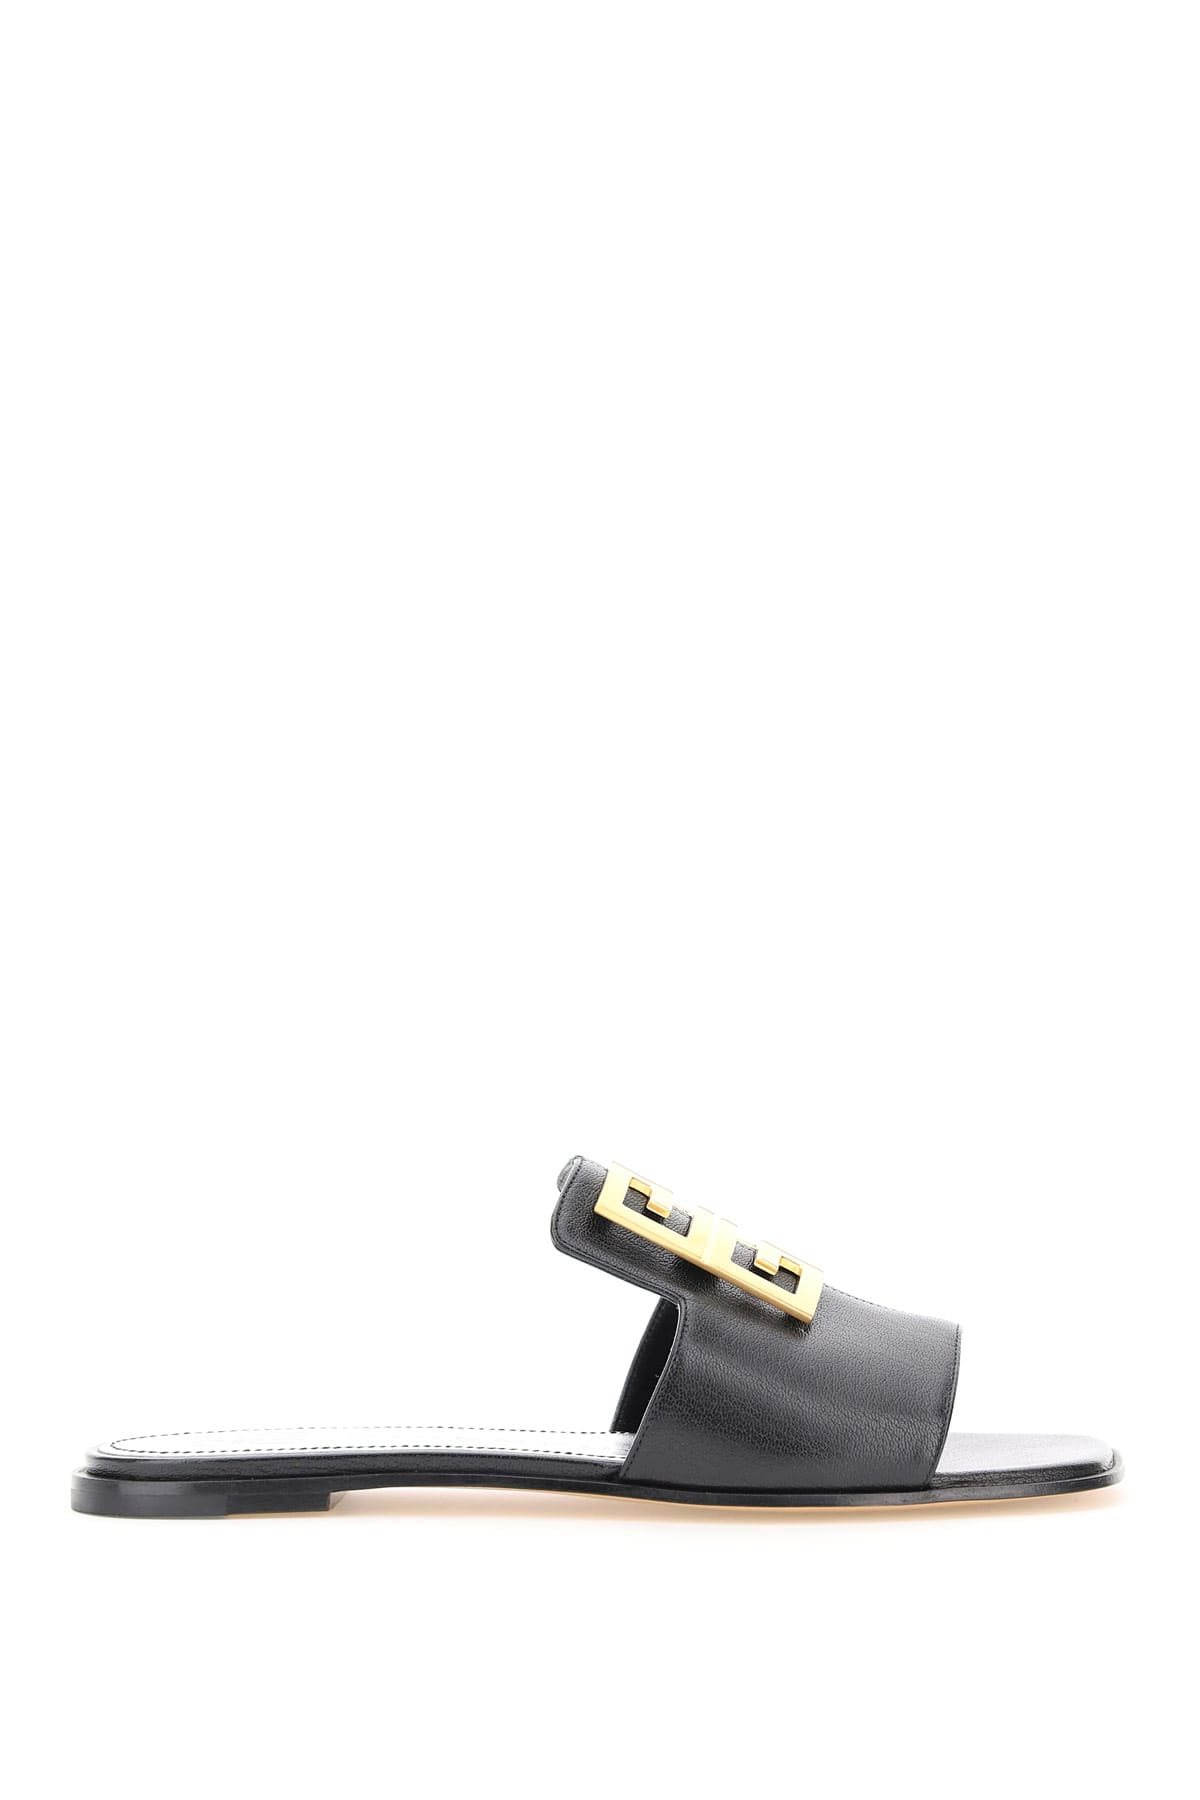 Givenchy Leathers FLAT SHOES